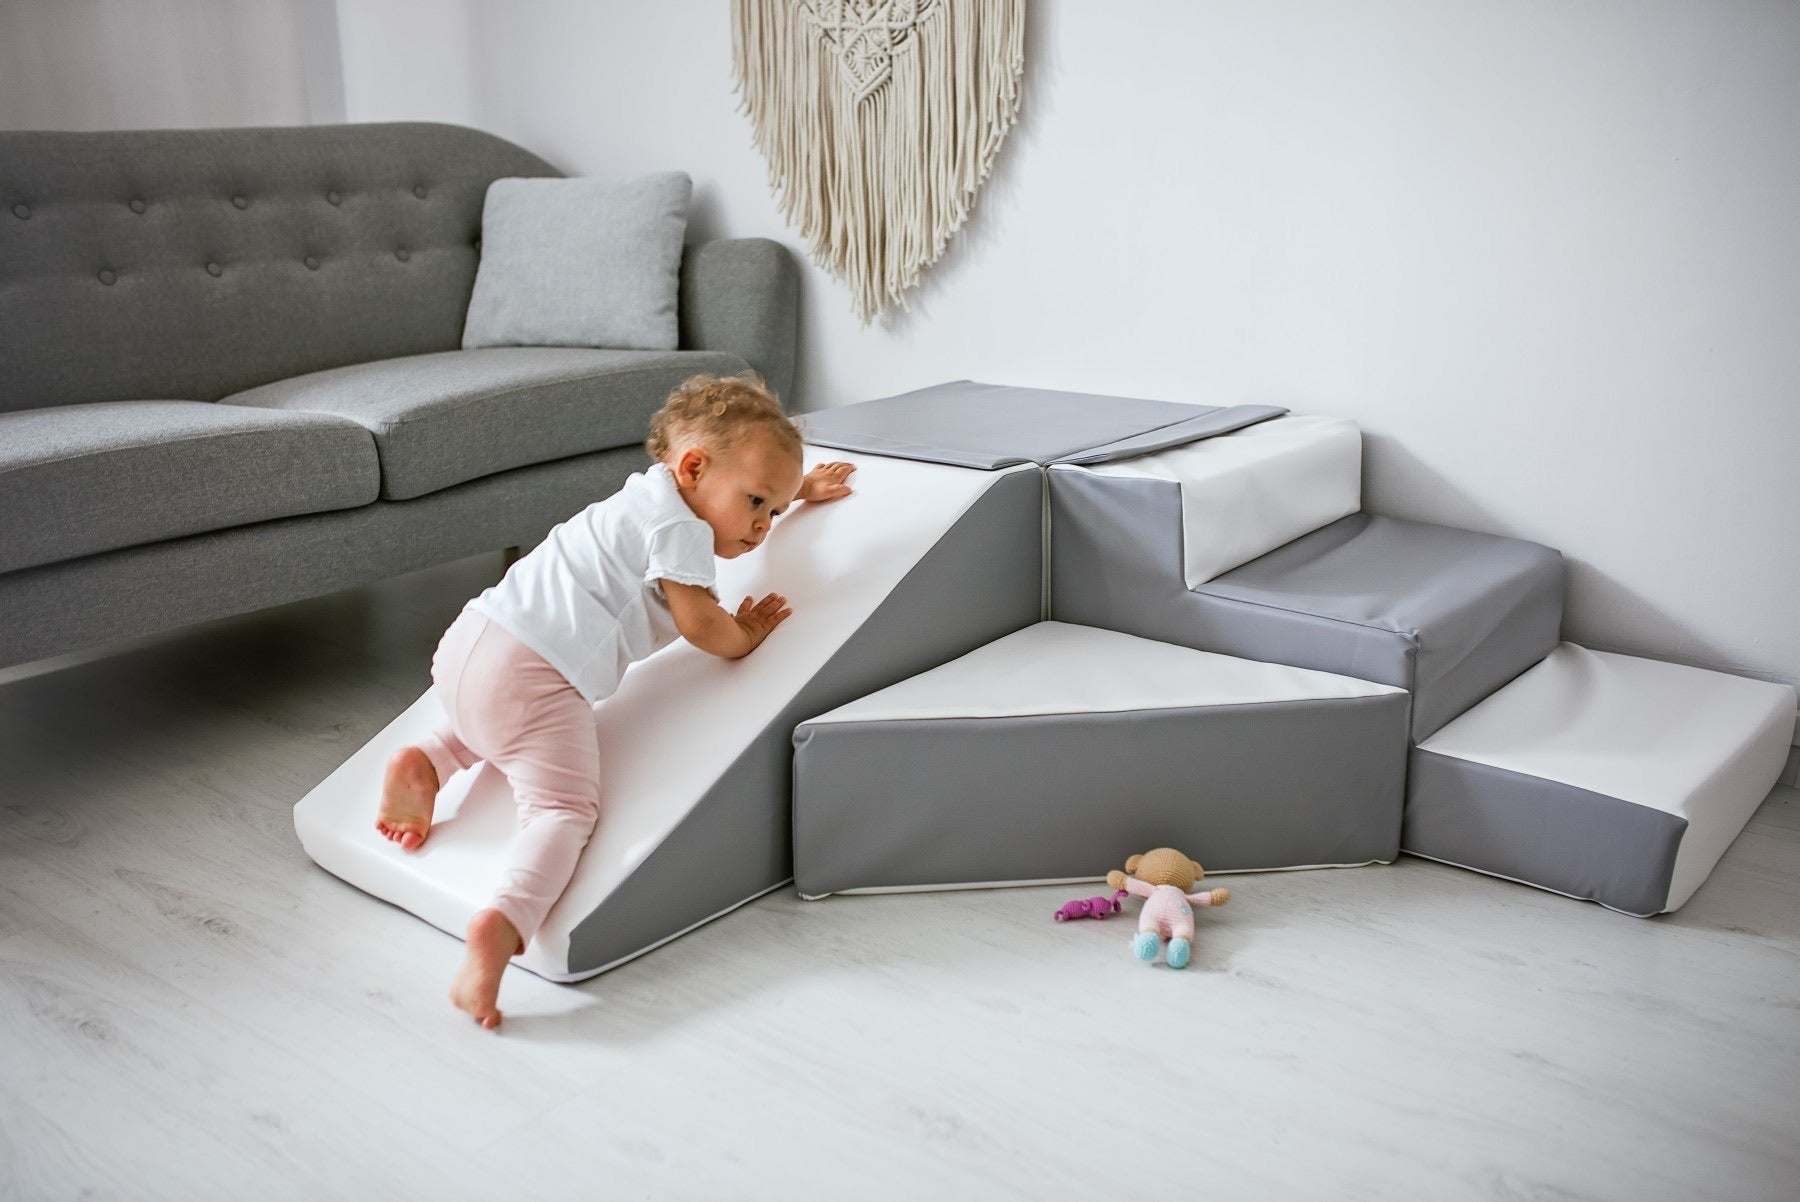 Soft Play Step & Slide Set Pre Order for Feb-March Delivery